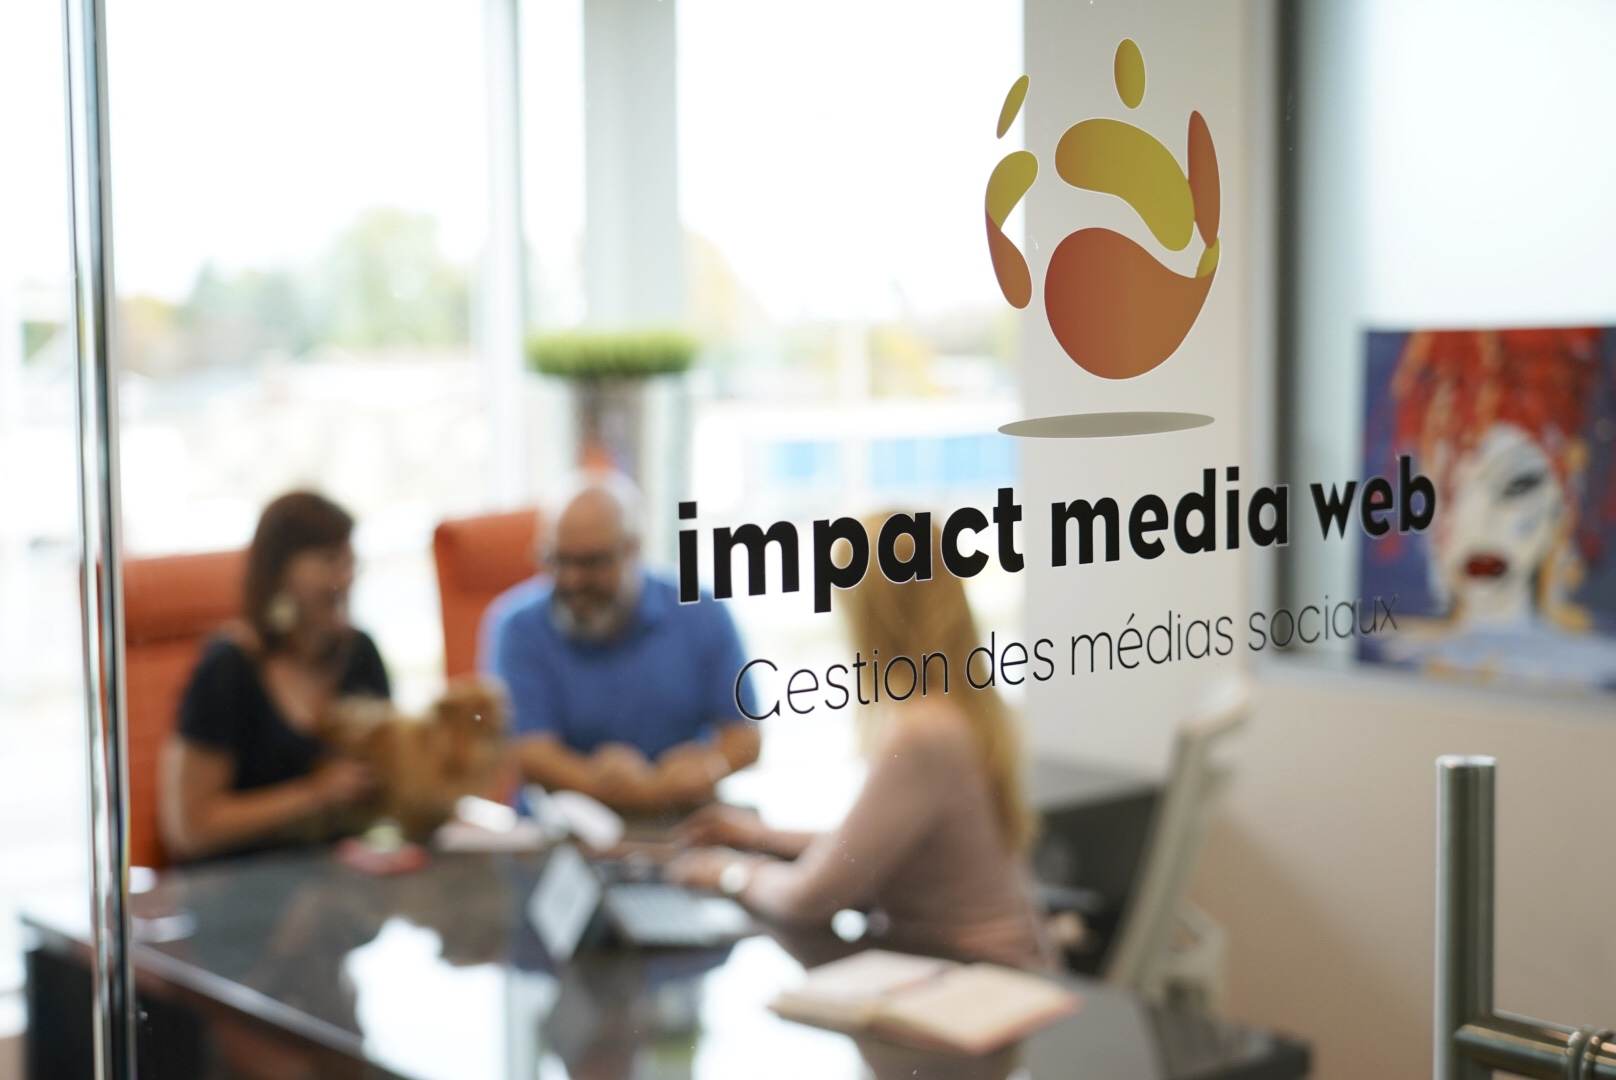 The Impact Media Web difference